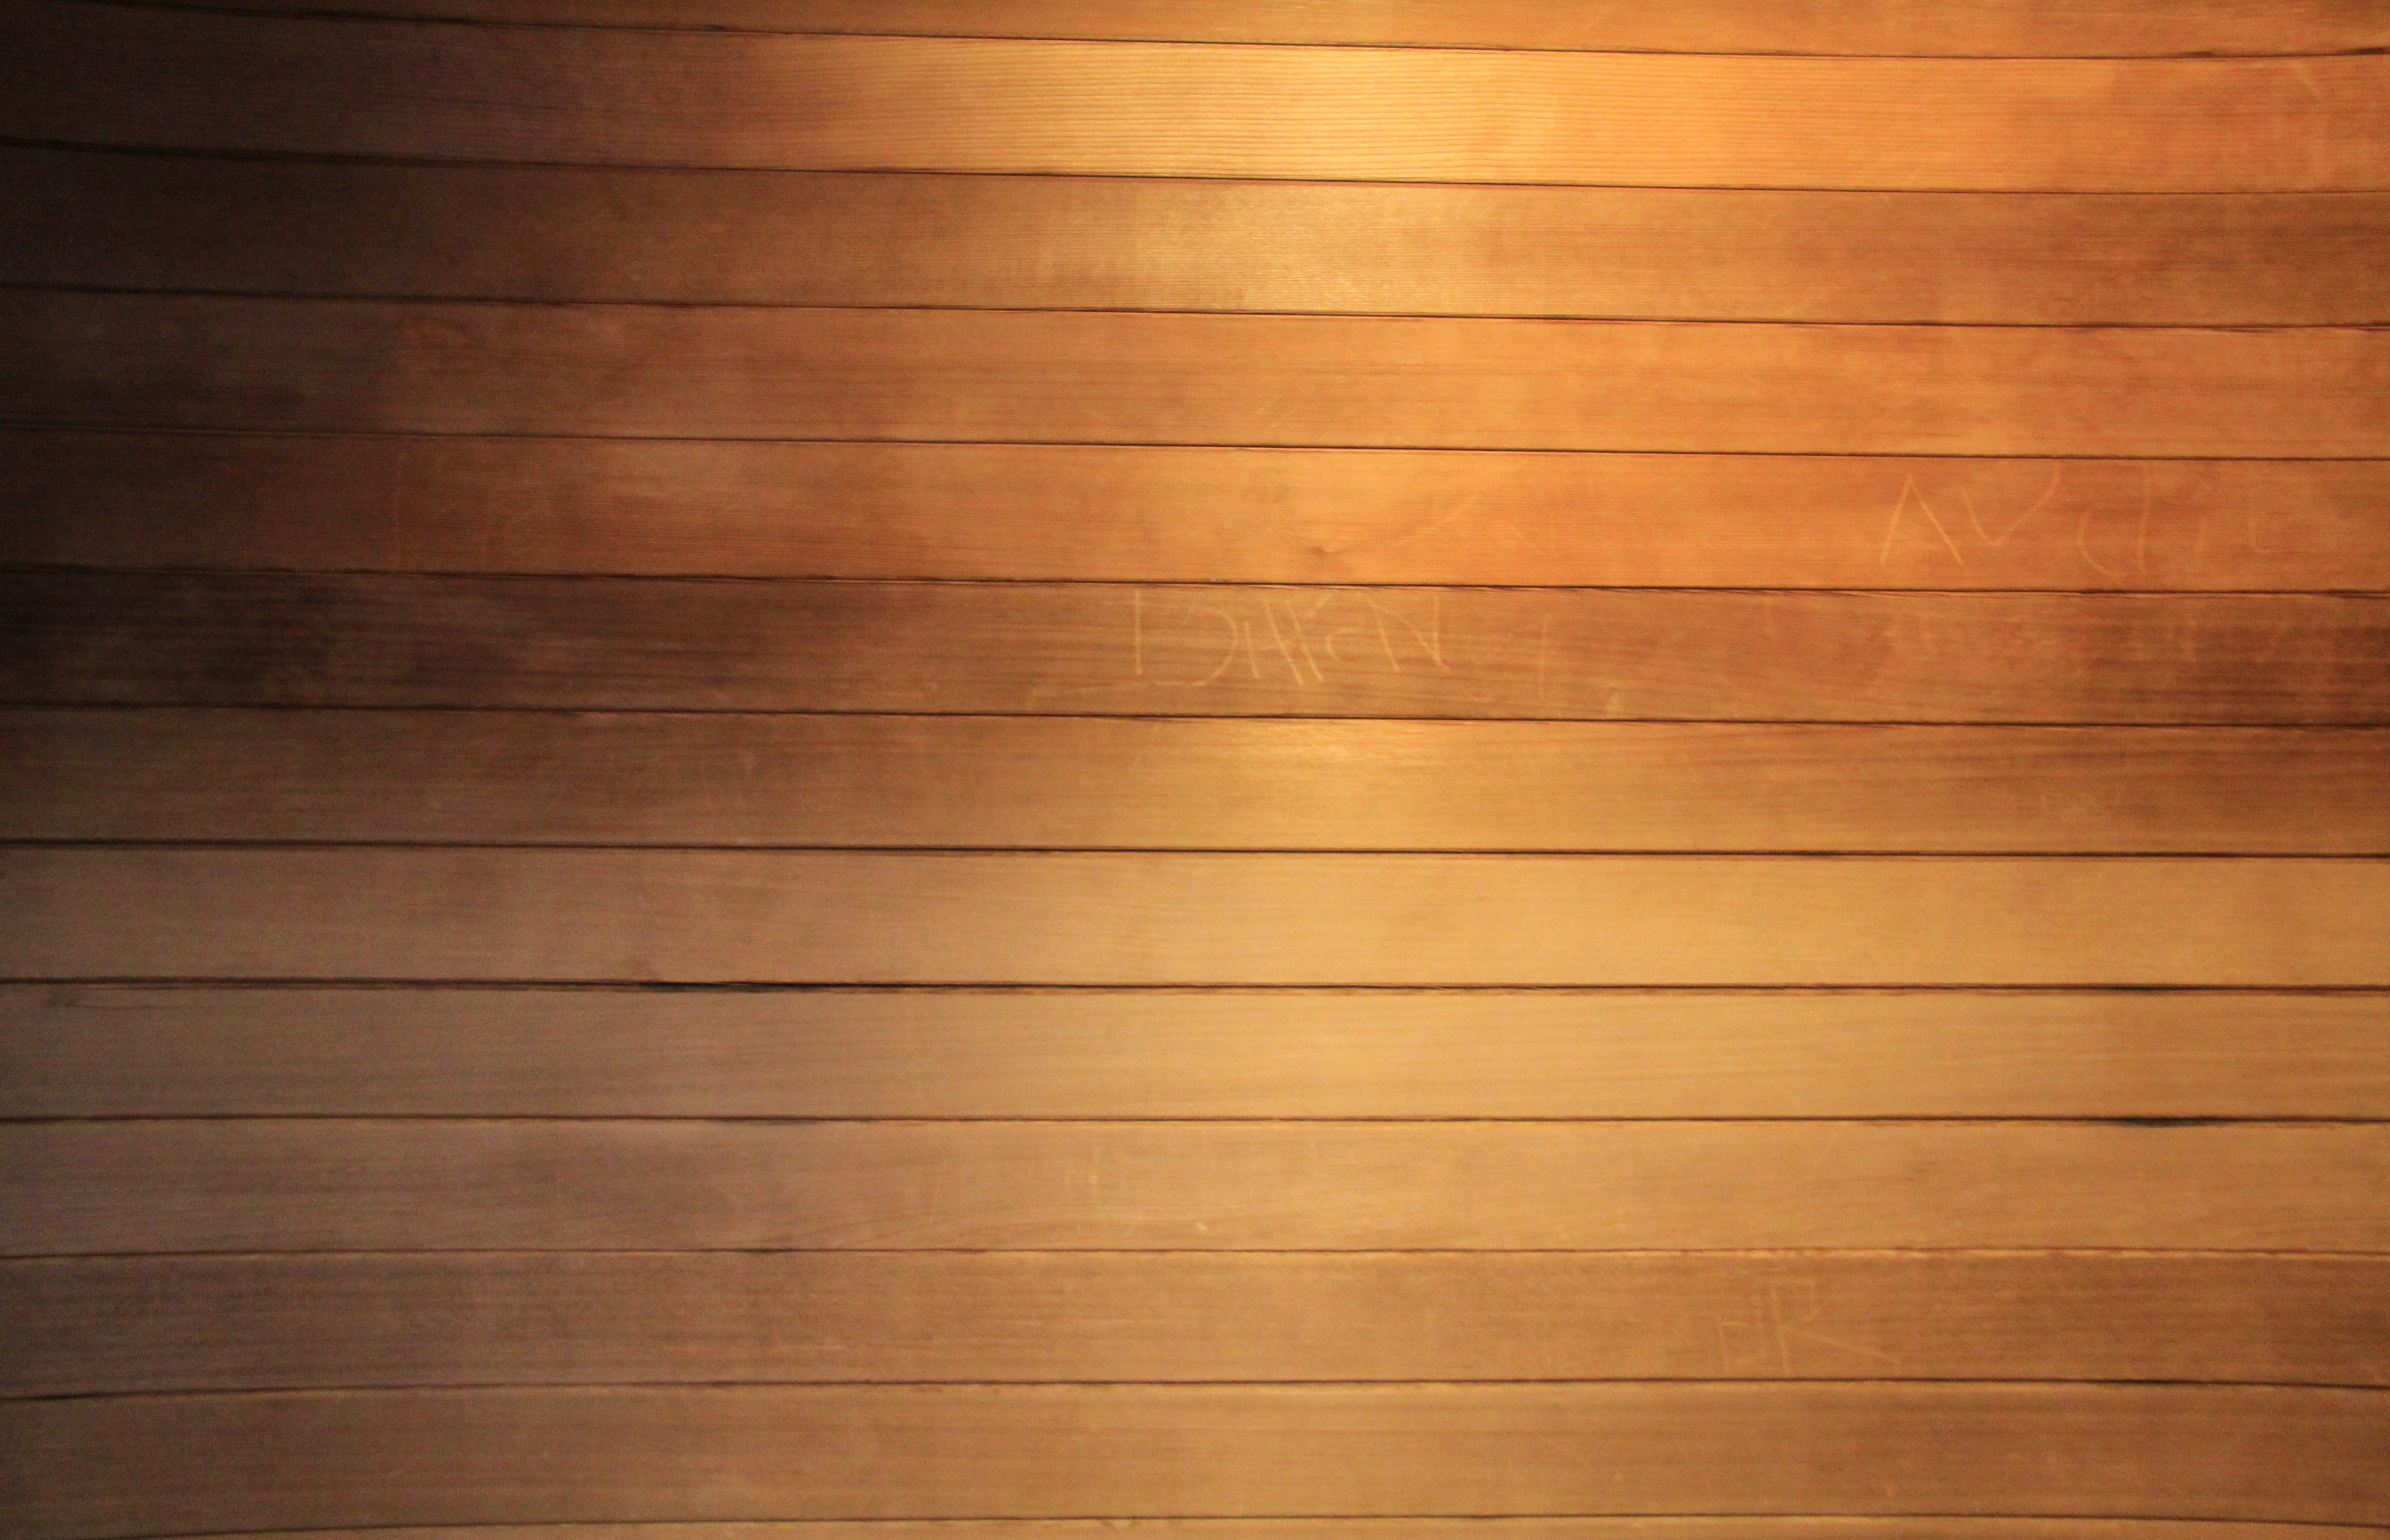 wood textures archives texturex free and premium textures and